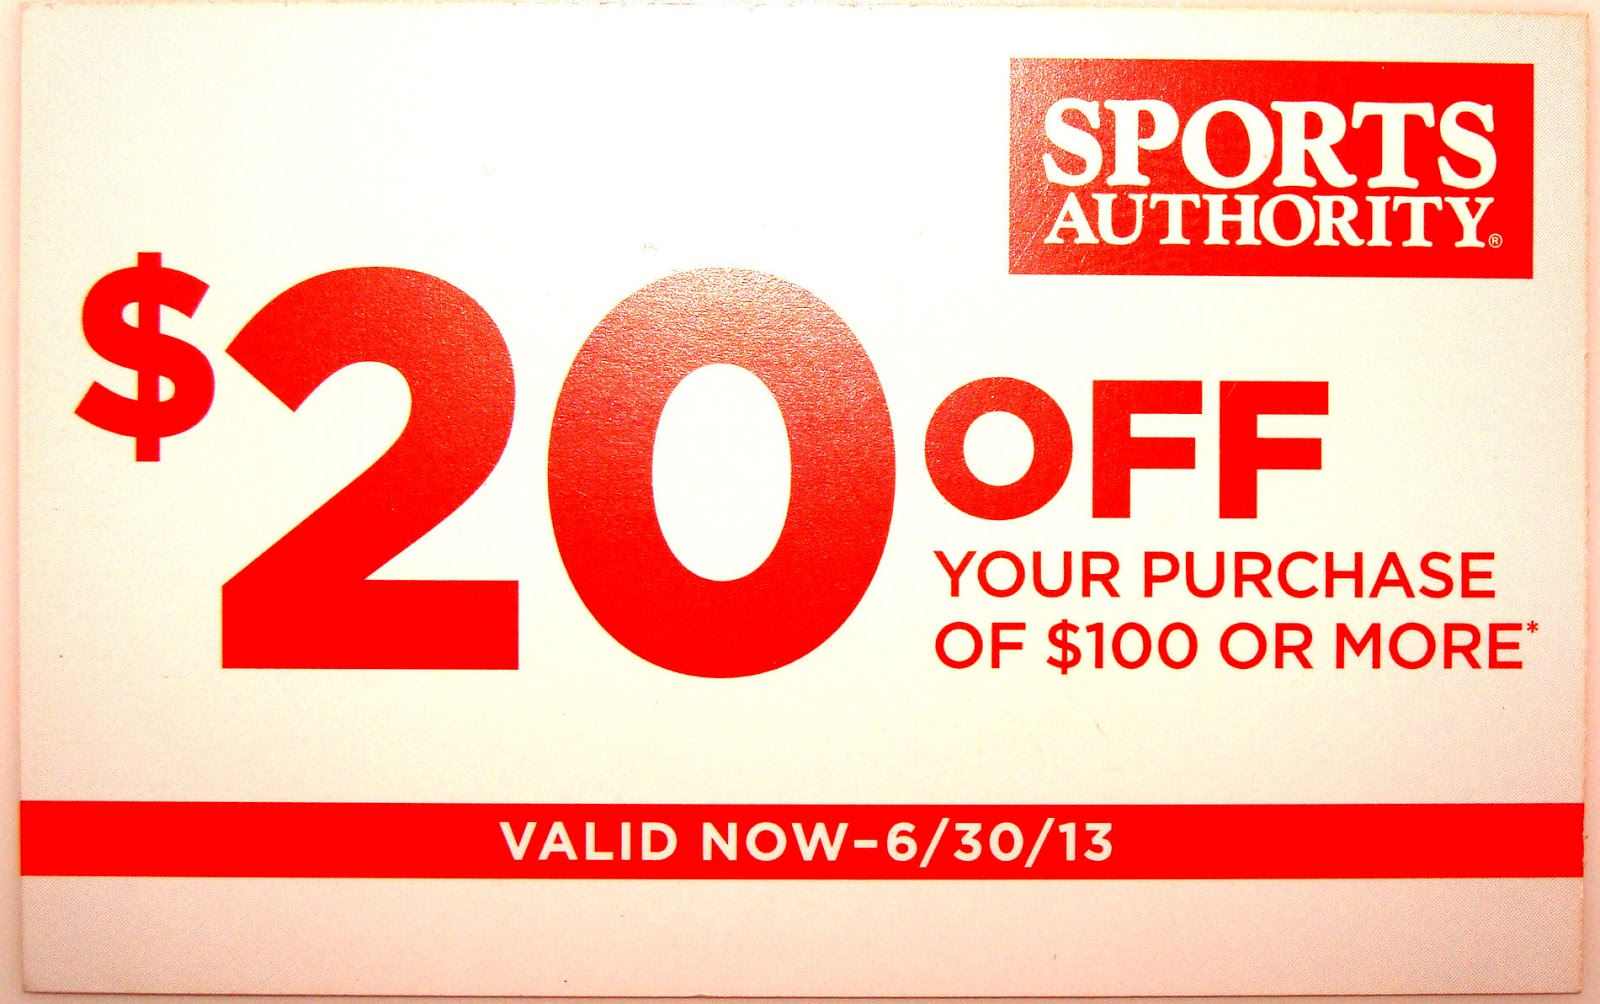 picture regarding Printable Coupons Sports Authority named Sports activities authority 20 off coupon printable - King soopers discount coupons